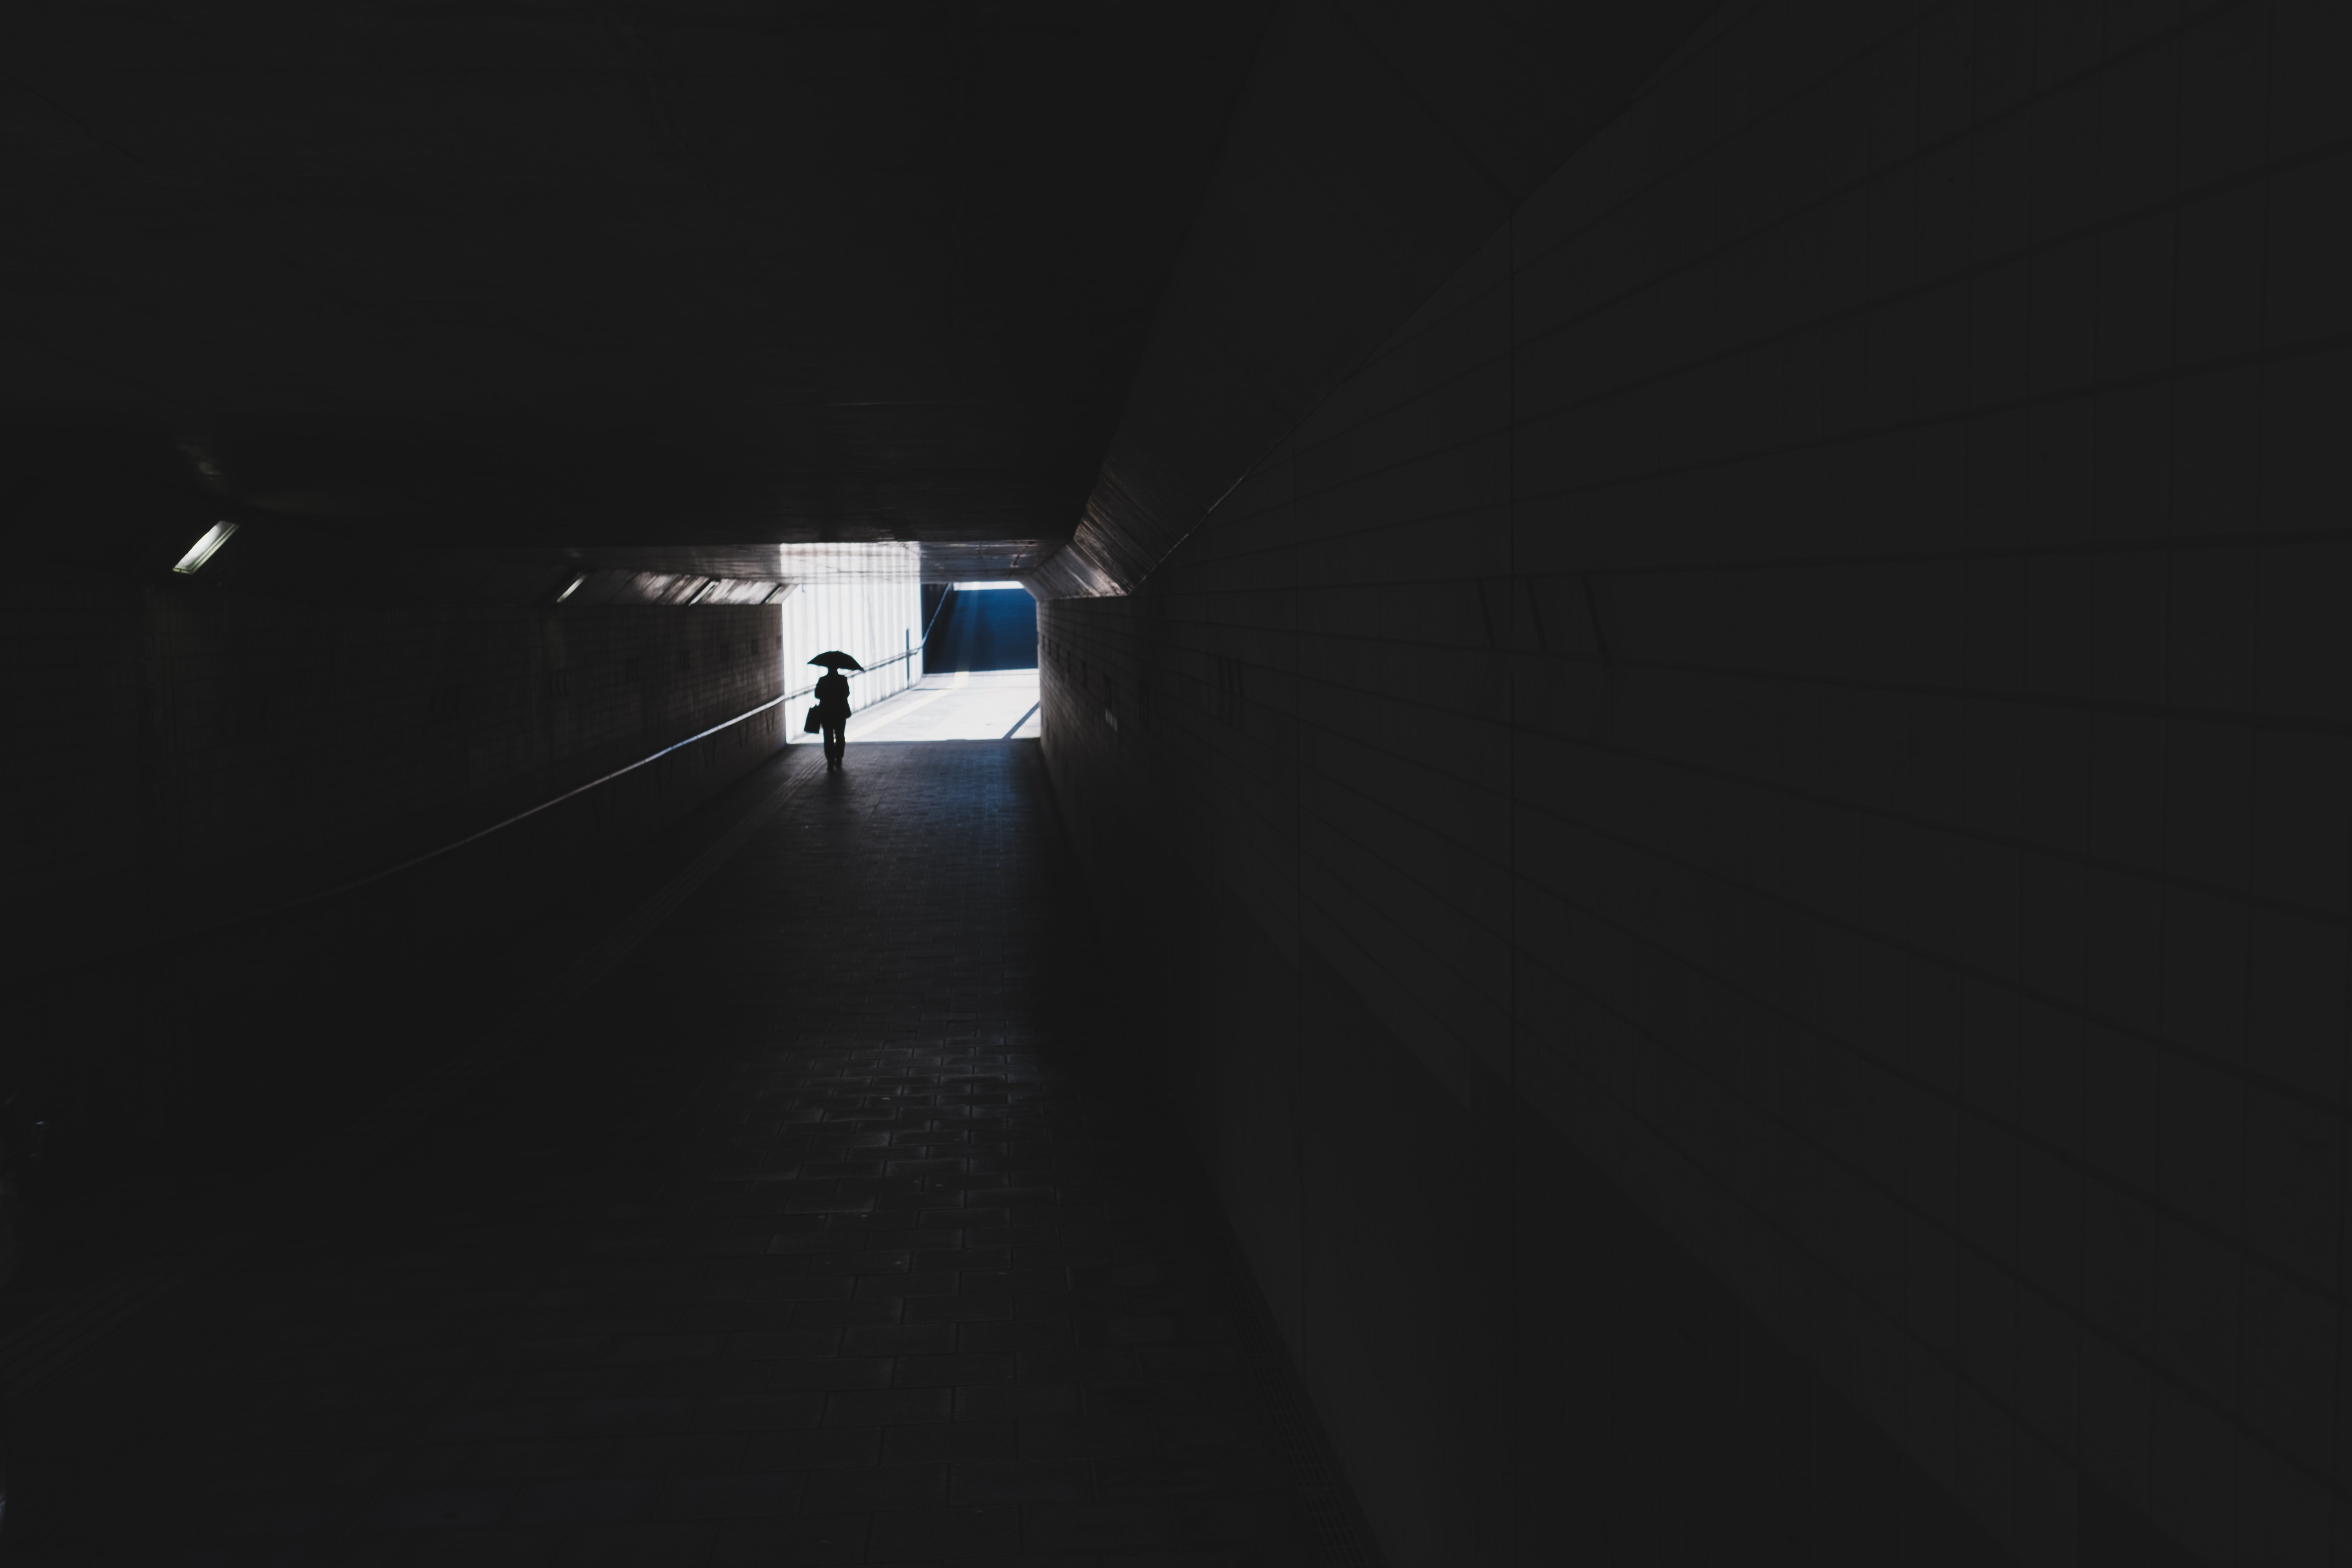 silhouette photo of person walking in tunnel